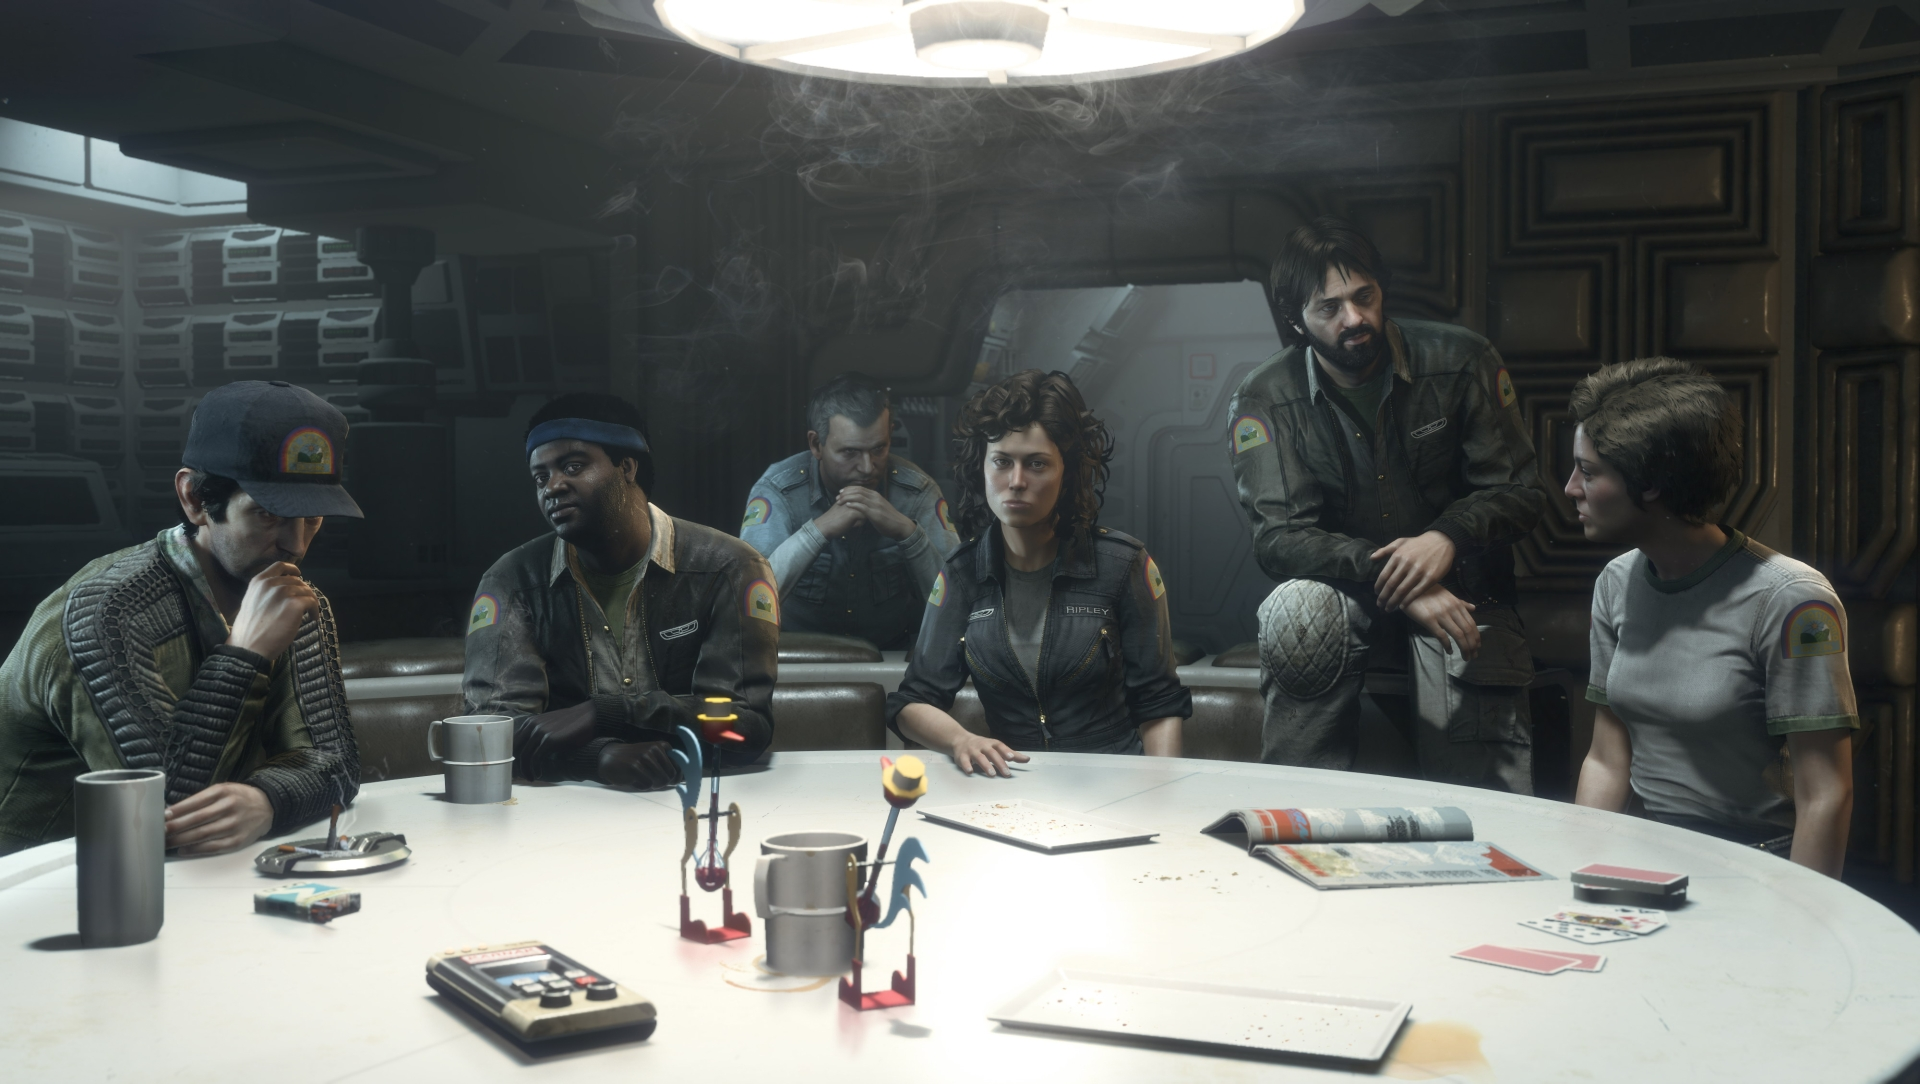 Original Movie Cast Returns in Alien: Isolation Pre-Order Bonus